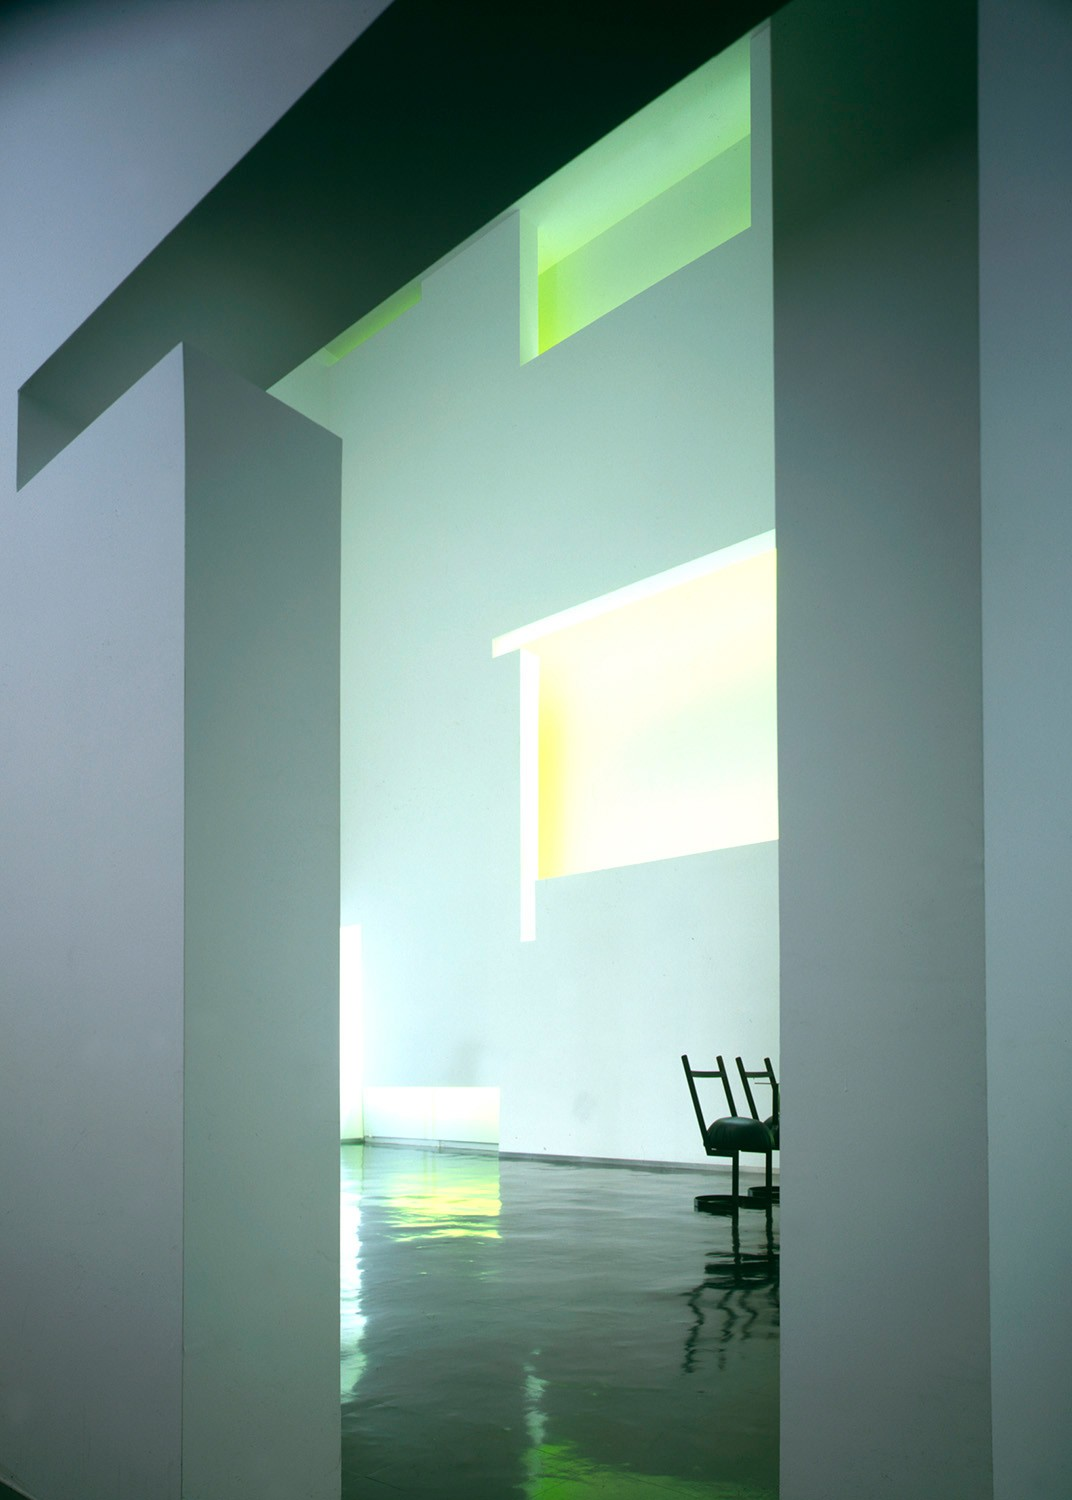 https://s3.us-east-2.amazonaws.com/steven-holl/uploads/projects/project-images/StevenHollArchitects_DEShaw_92-010-05B_WV.jpg